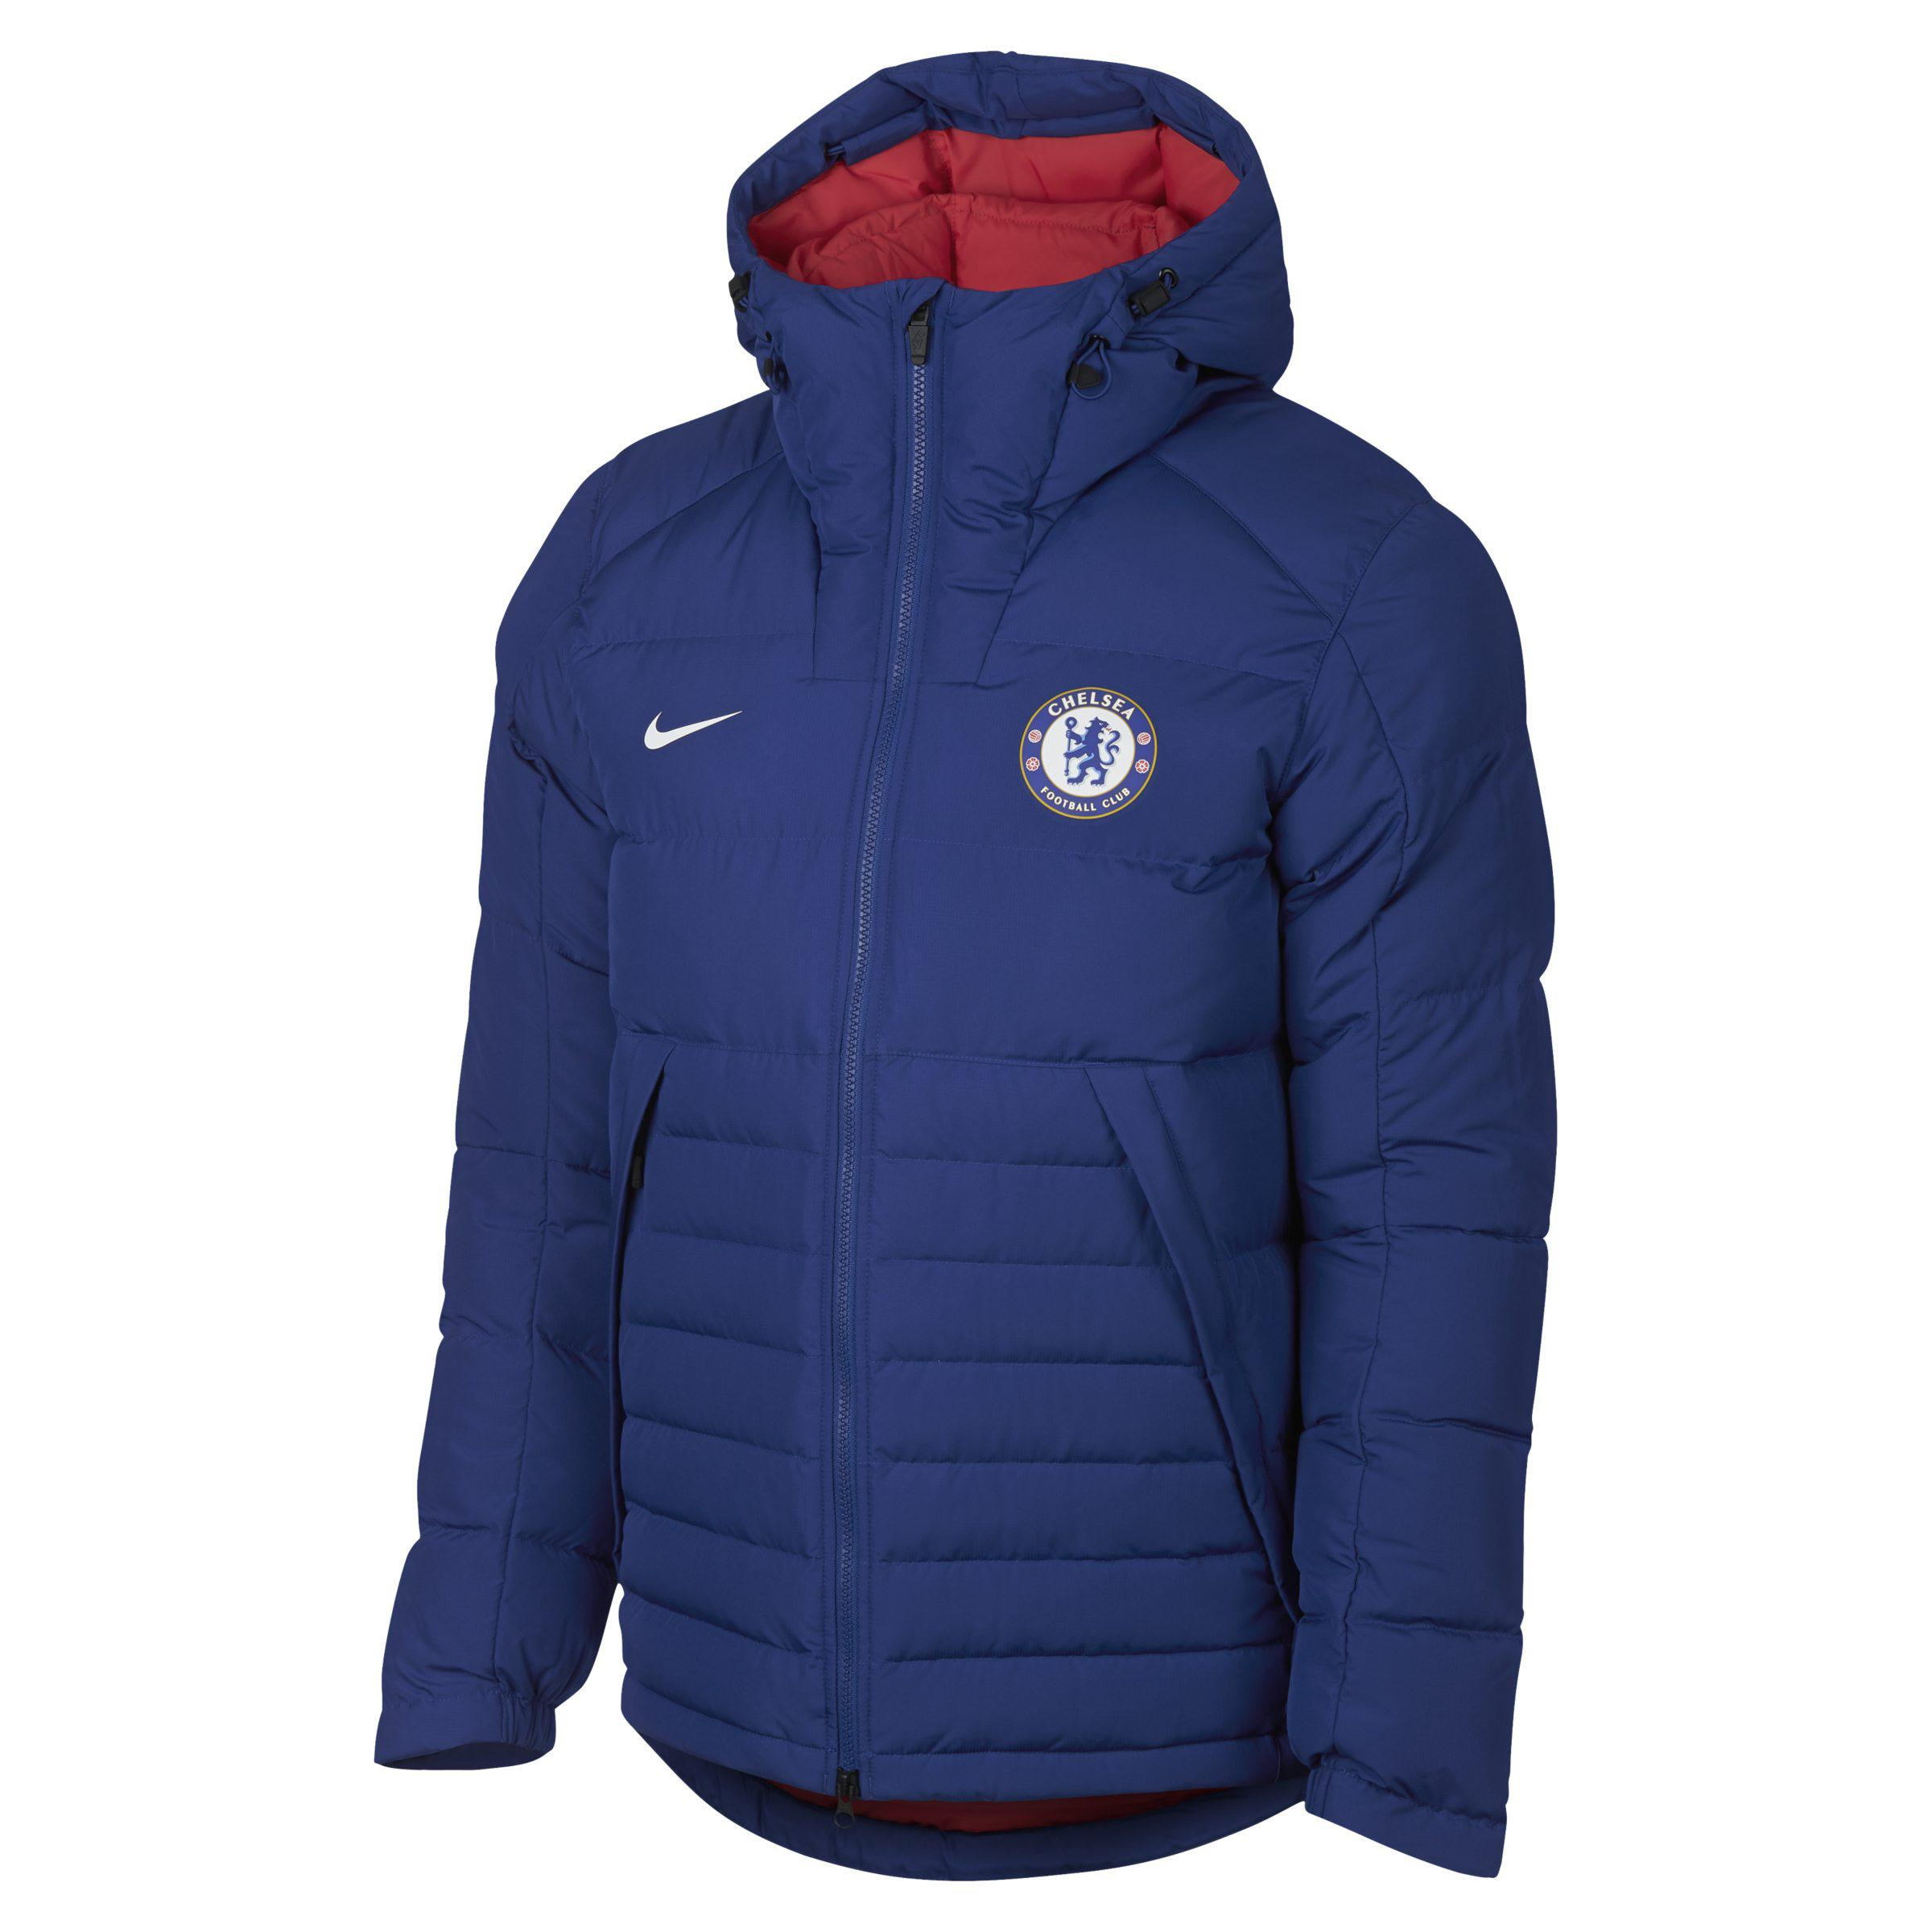 cbbc24a05 Nike Chelsea Fc Down Jacket in Blue for Men - Lyst